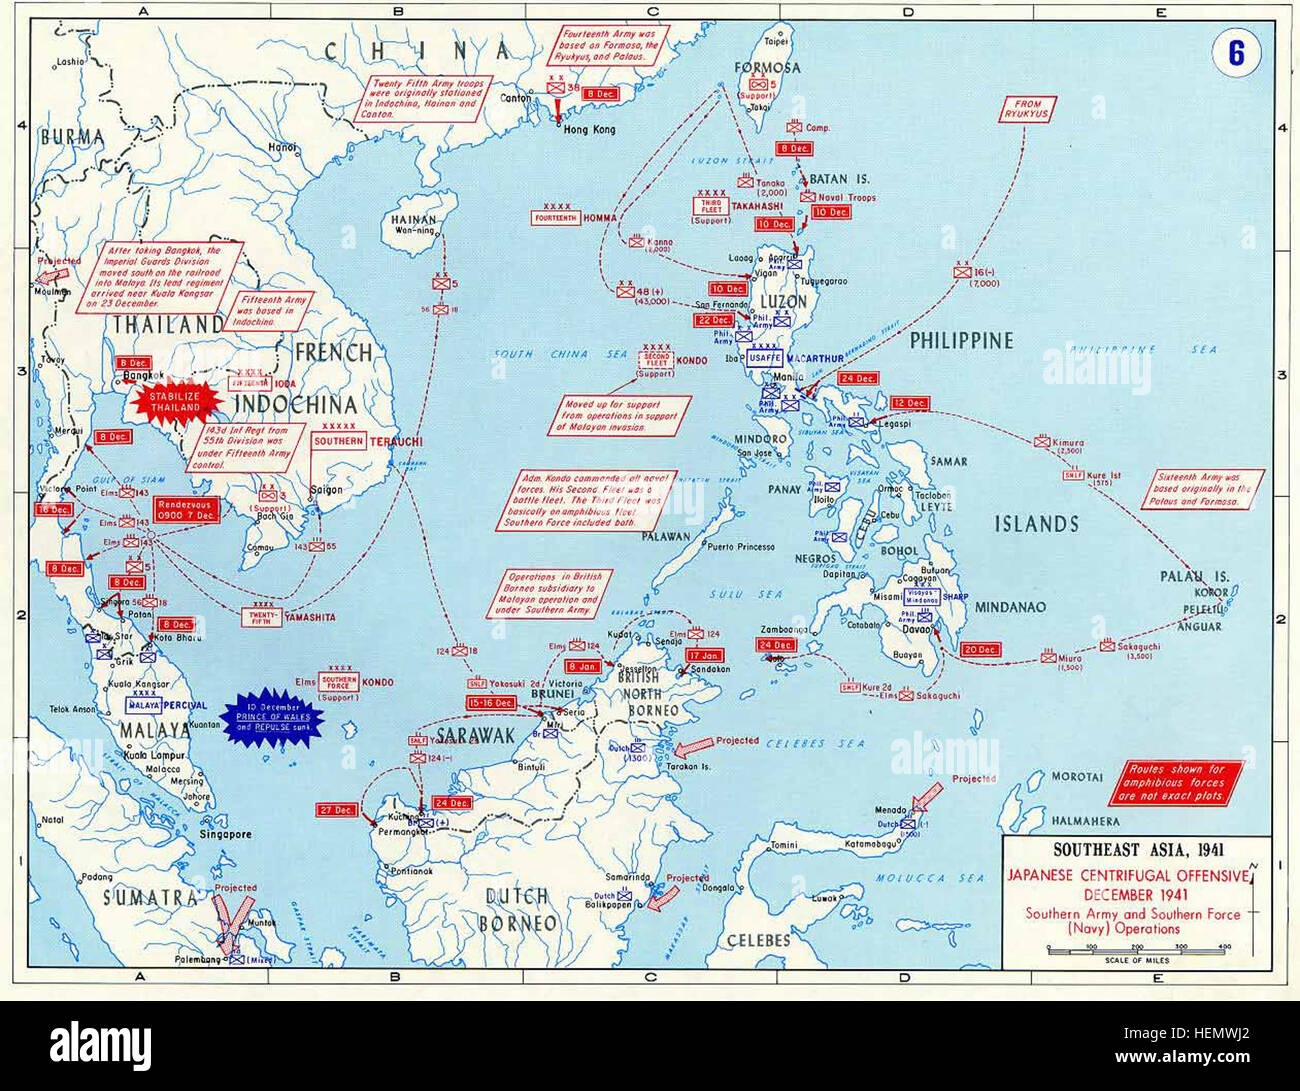 Pacific War - Southeast Asia 1941 - Map Stock Photo: 129536906 - Alamy